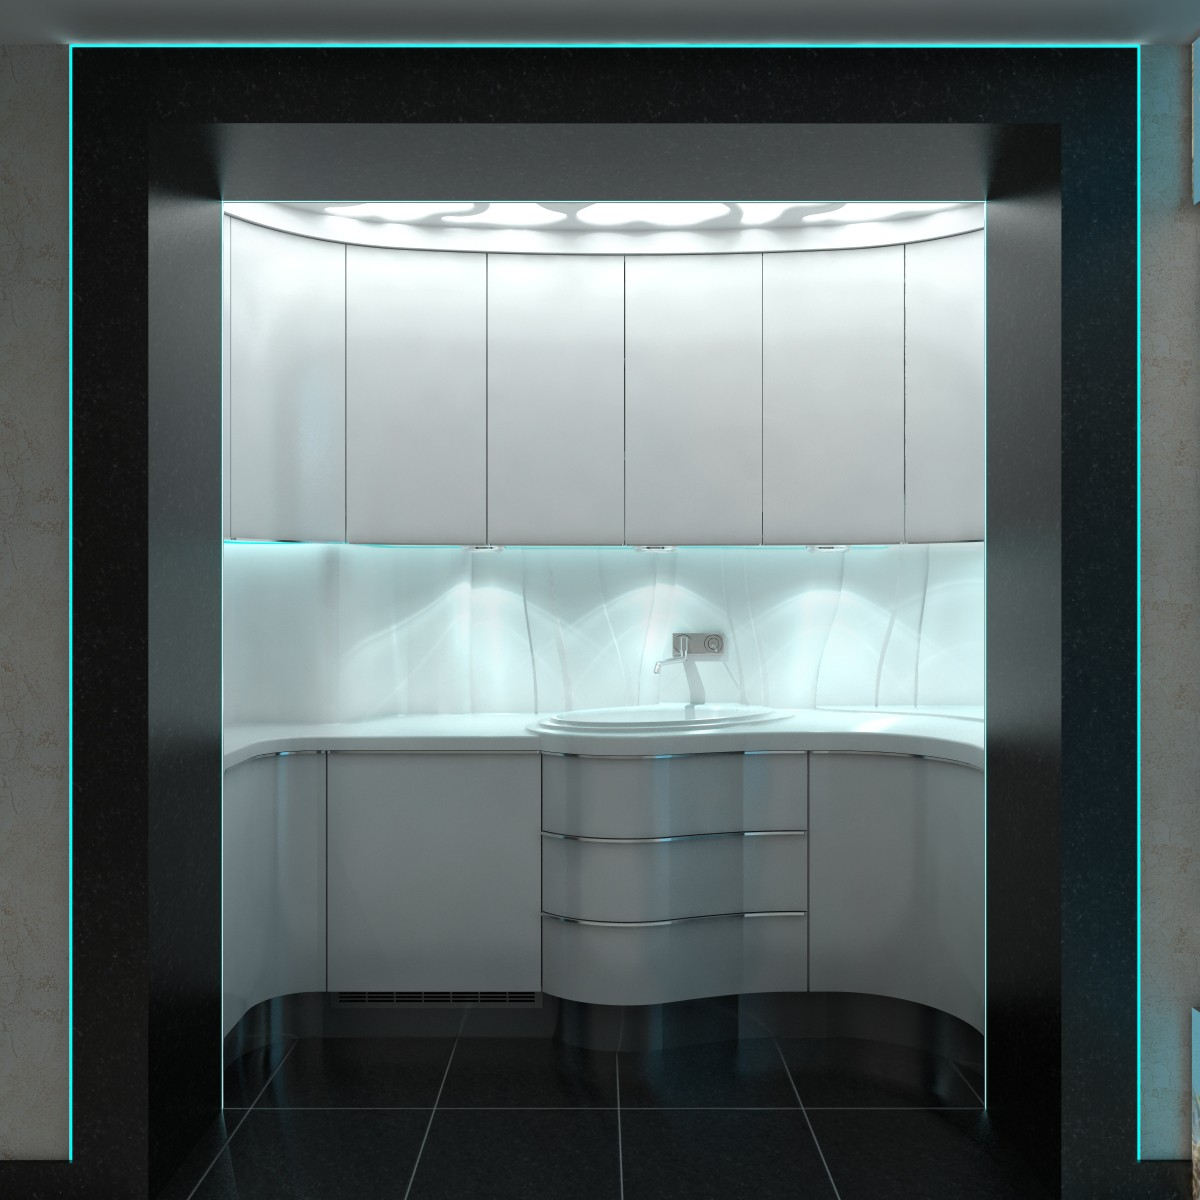 3d visualization of the project in the Kitchenette 3d max, render vray of nedesigner